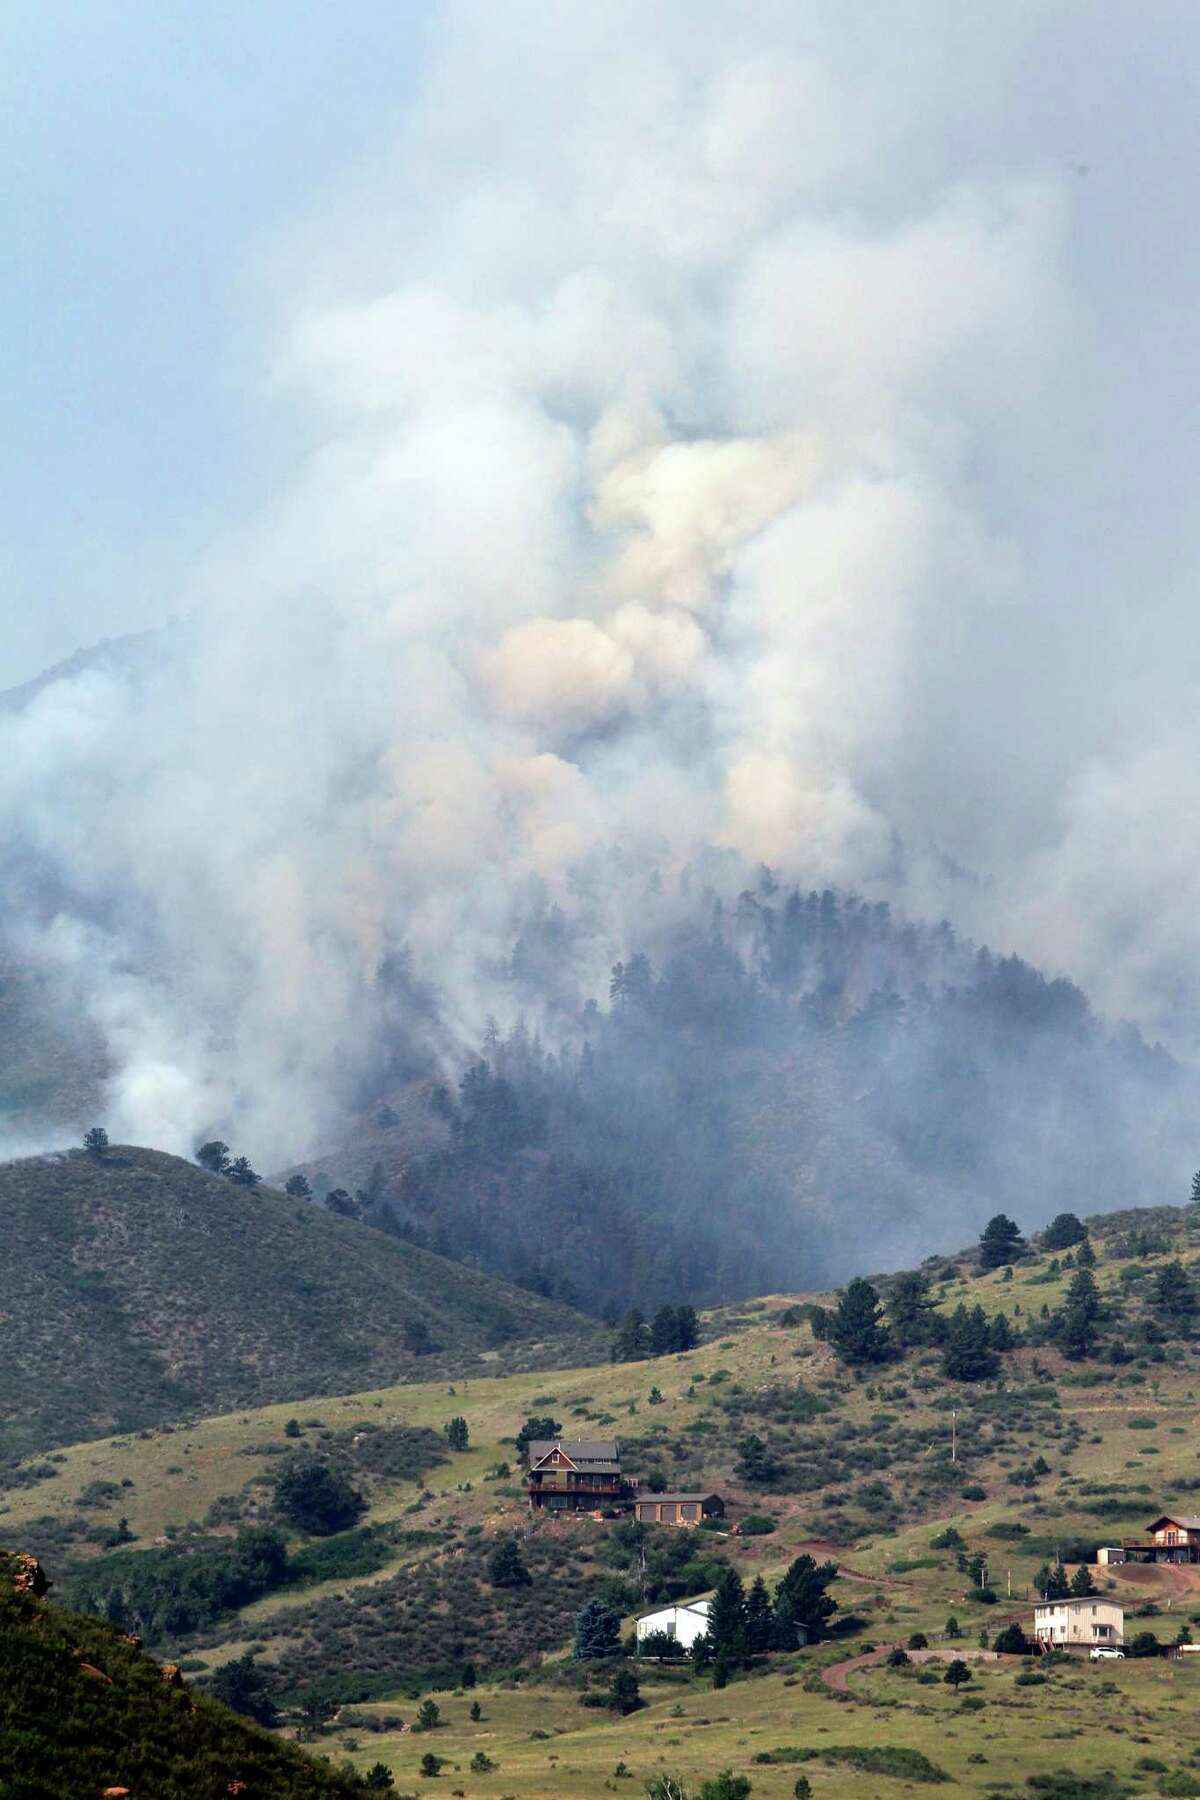 Fire burns on a hill with homes in the foreground on the High Park wildfire near Fort Collins, Colo., on Monday. The wildfire is burning out of control in northern Colorado, while an unchecked blaze choked a small community in southern New Mexico as authorities in both regions battled fires Monday.